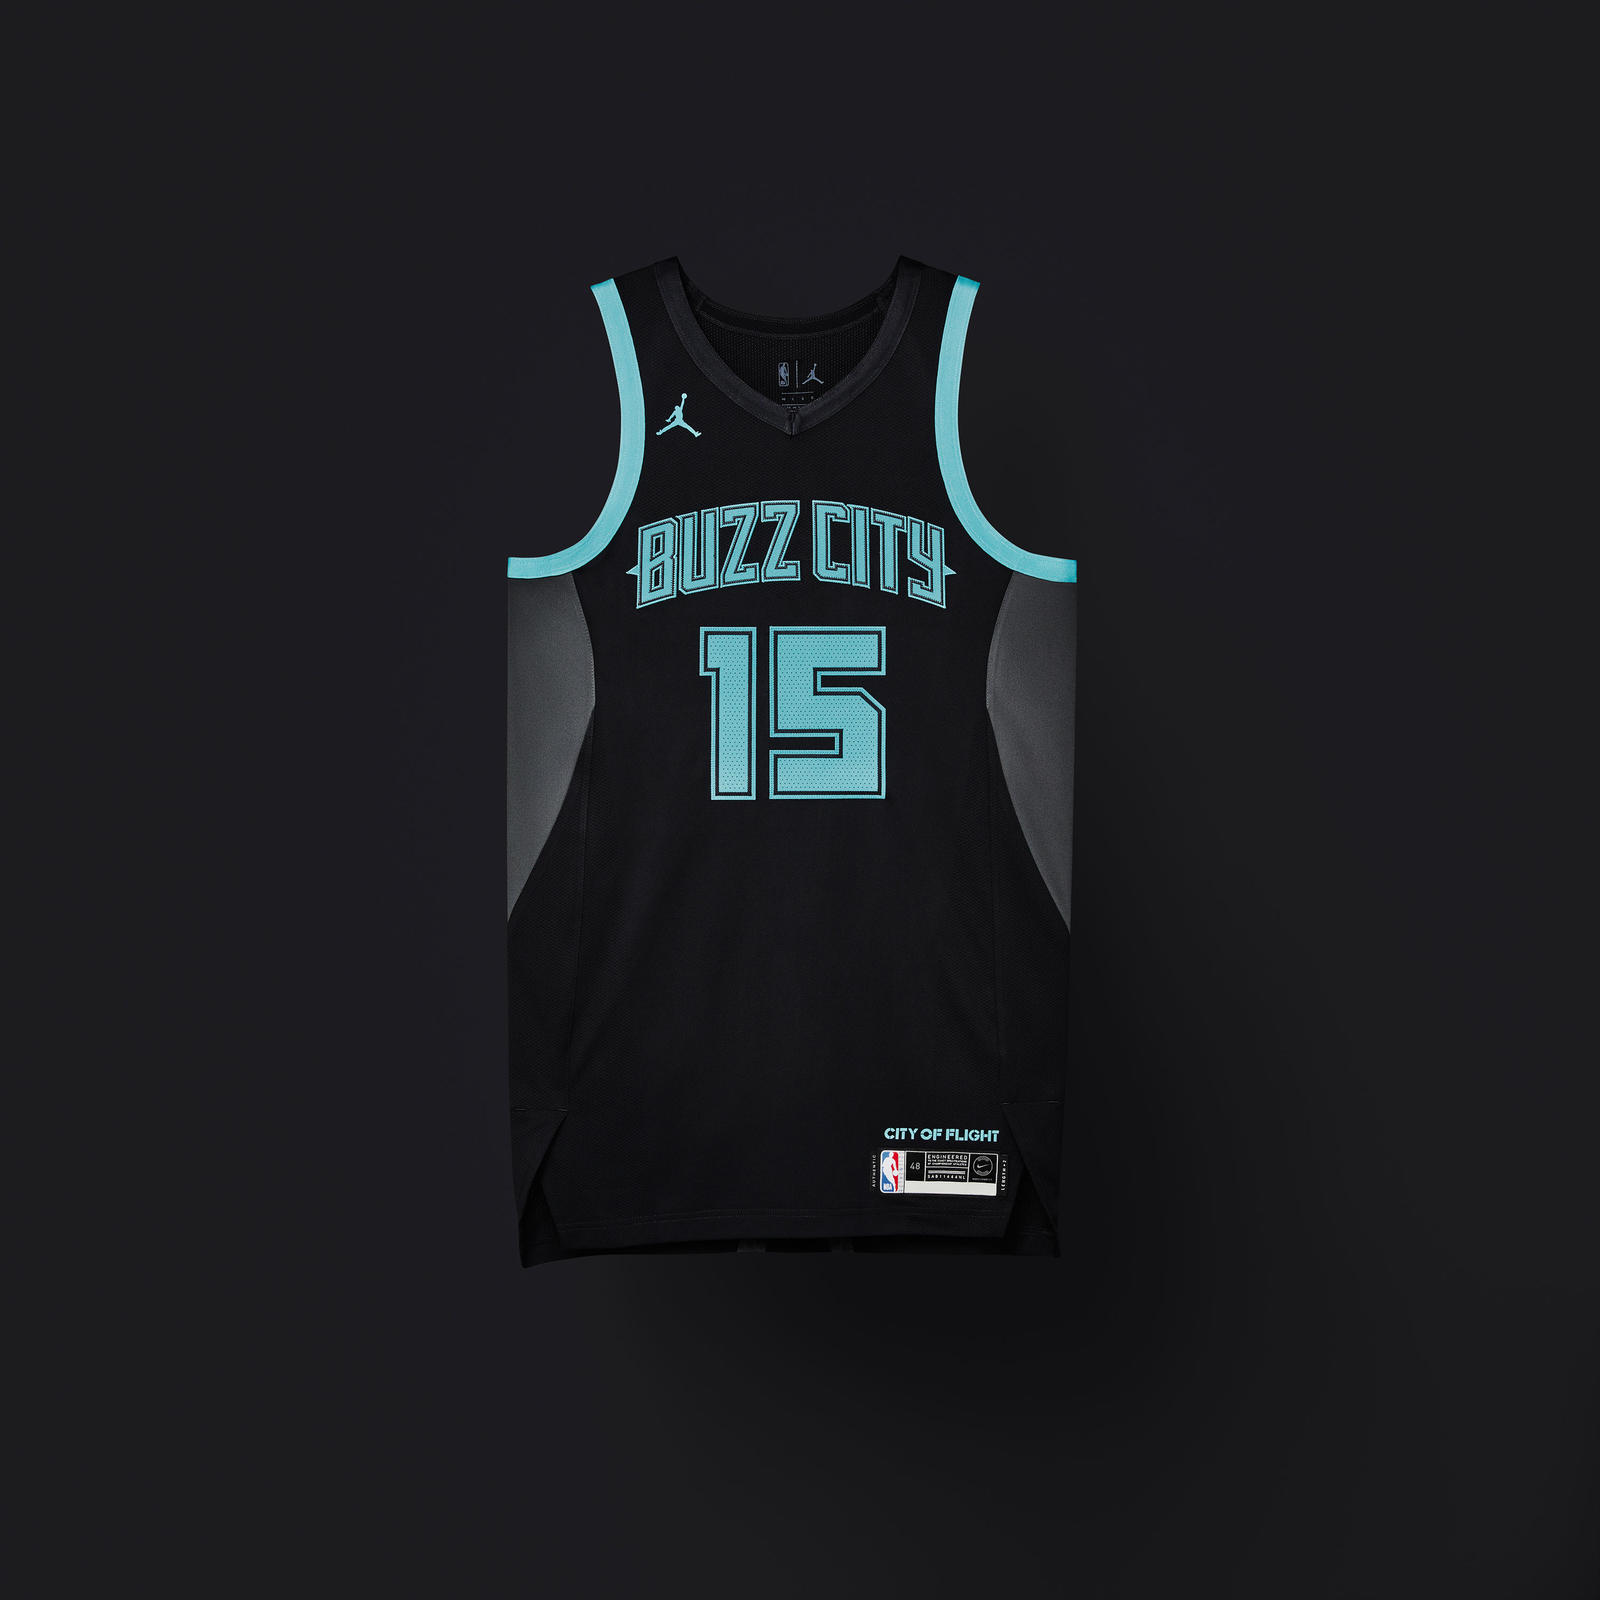 d5cc6d786ab NBA City Edition Uniforms 2018-19  Brooklyn